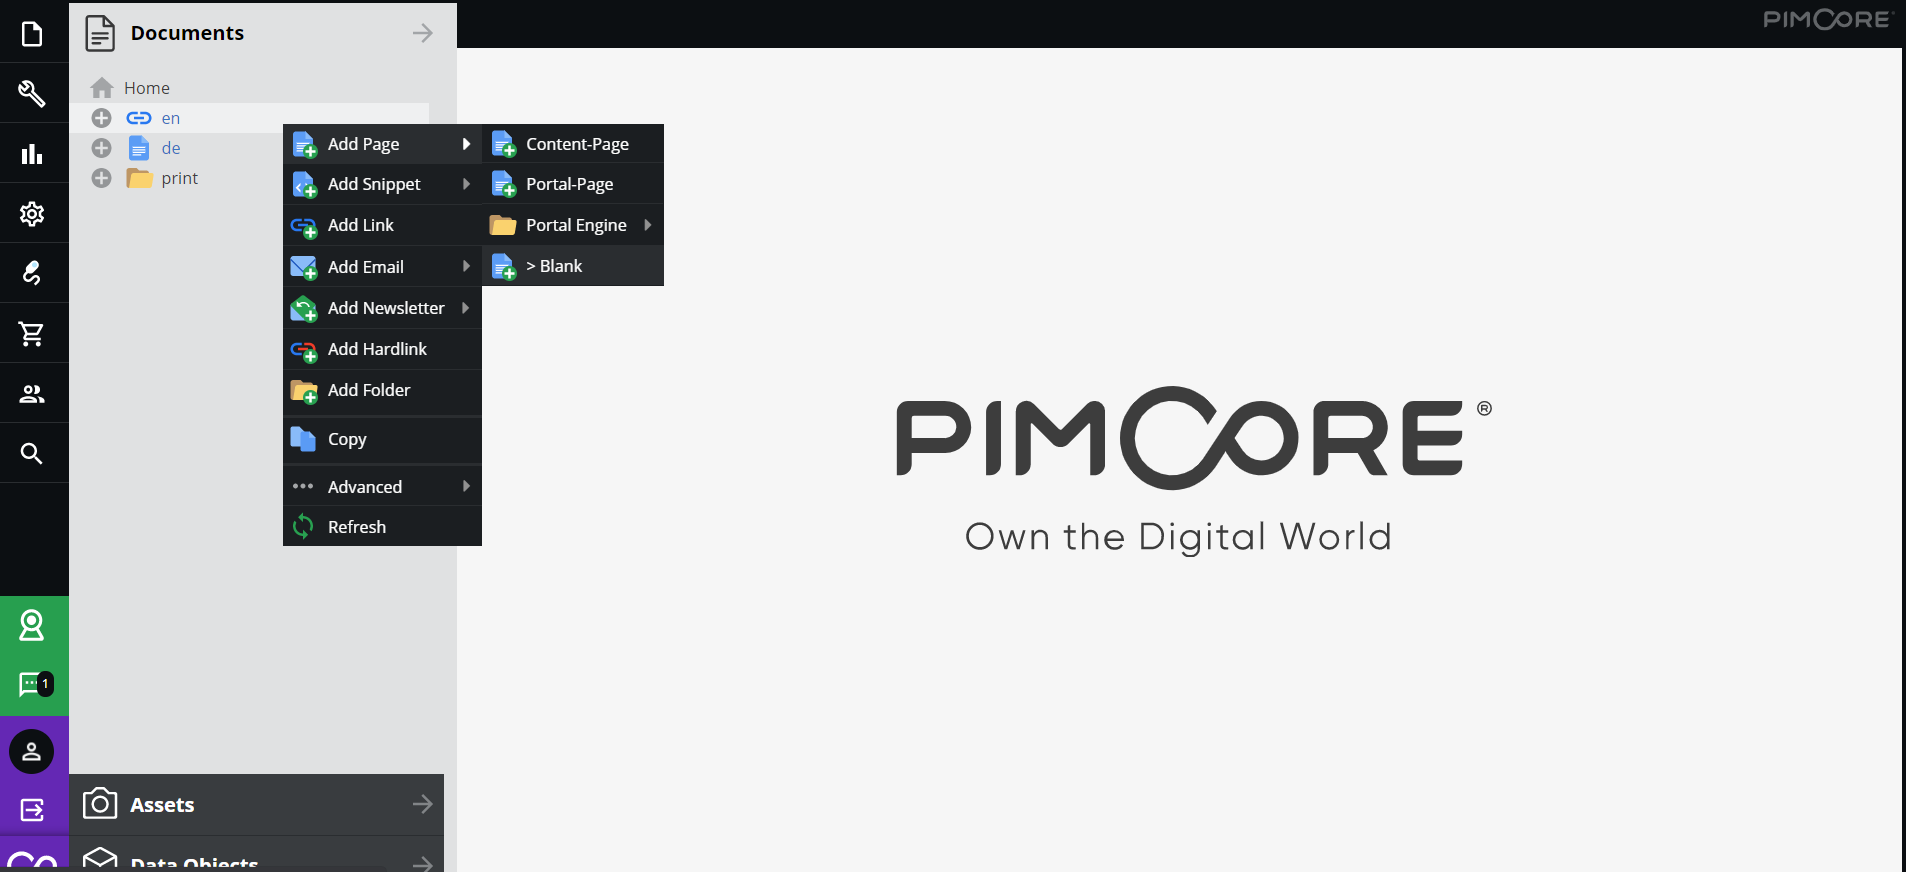 Adding a new blank page in Pimcore administration